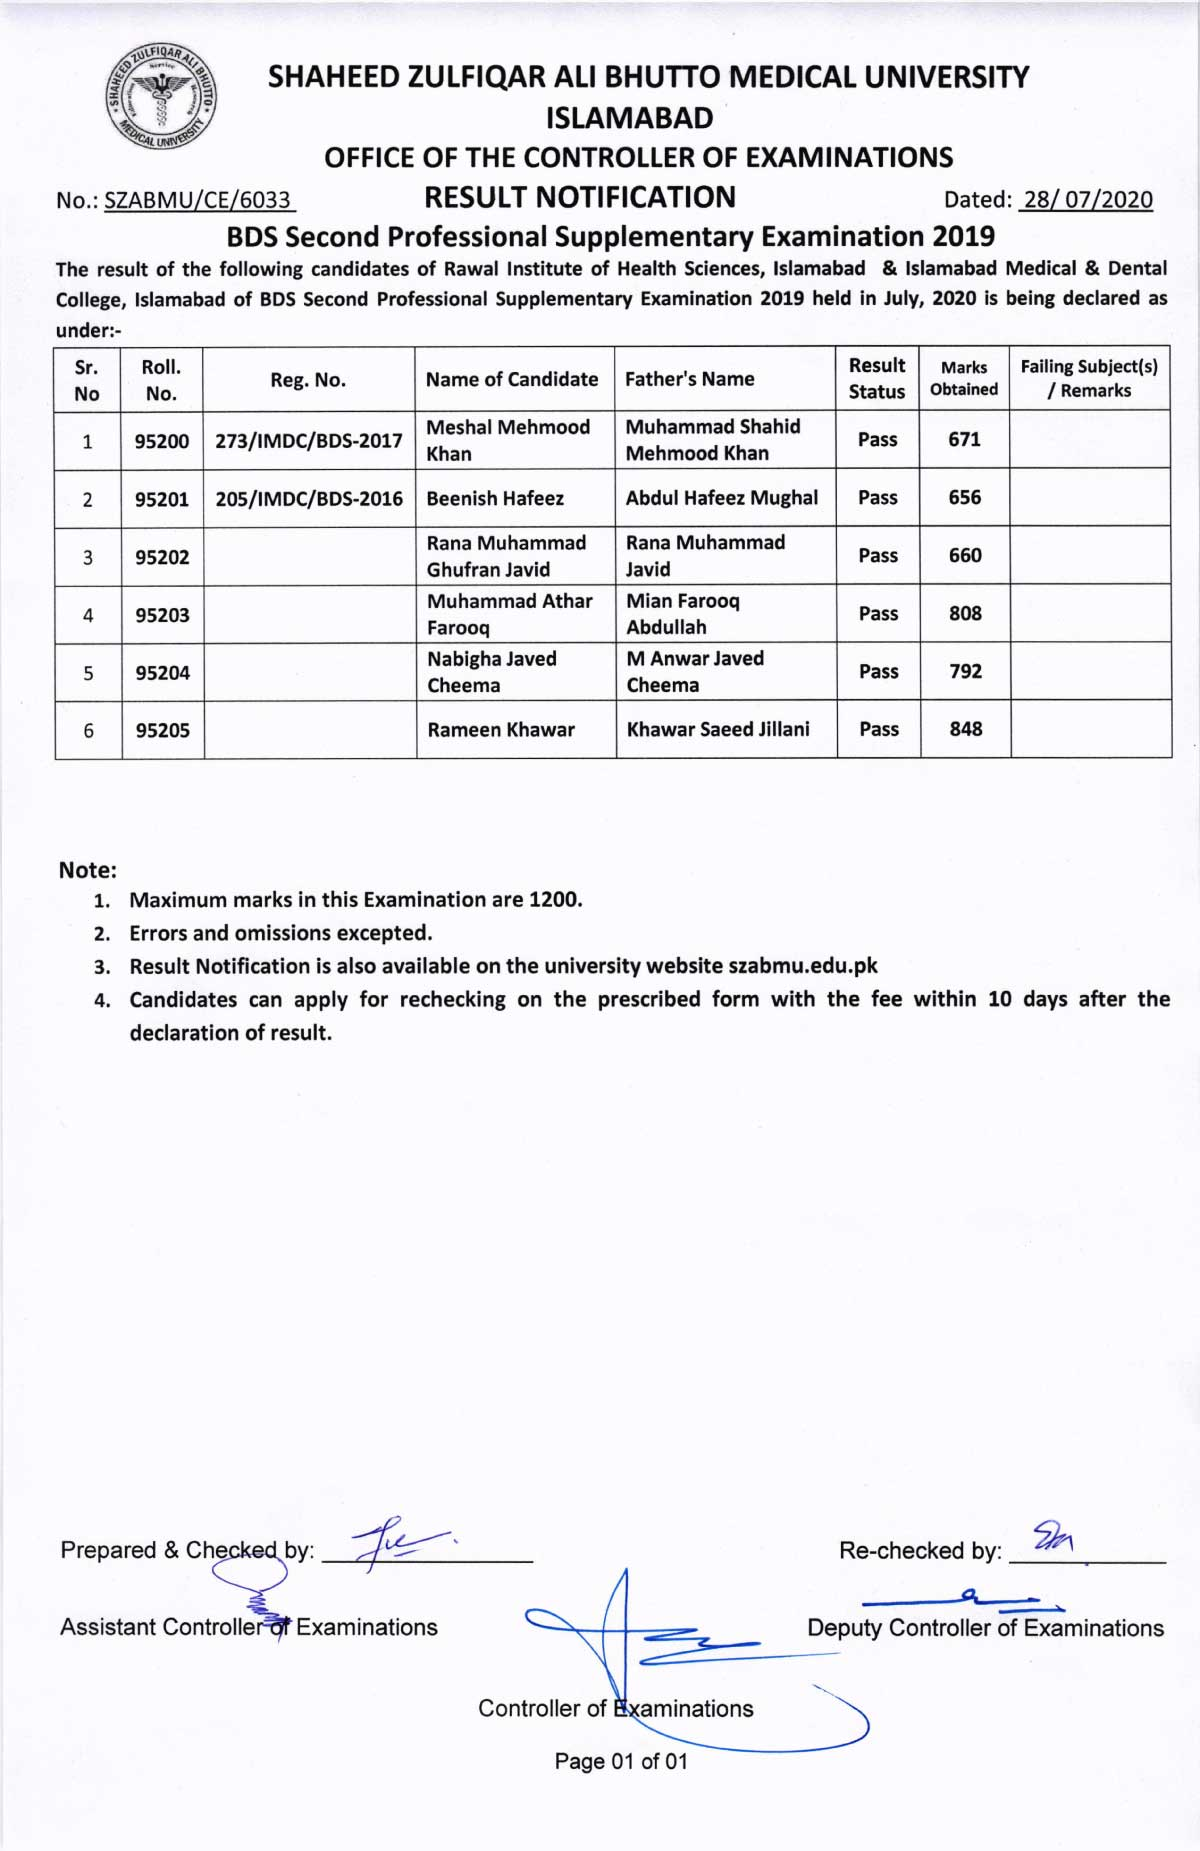 Result Notification of BDS 2nd Professional Supplementary Examination 2019